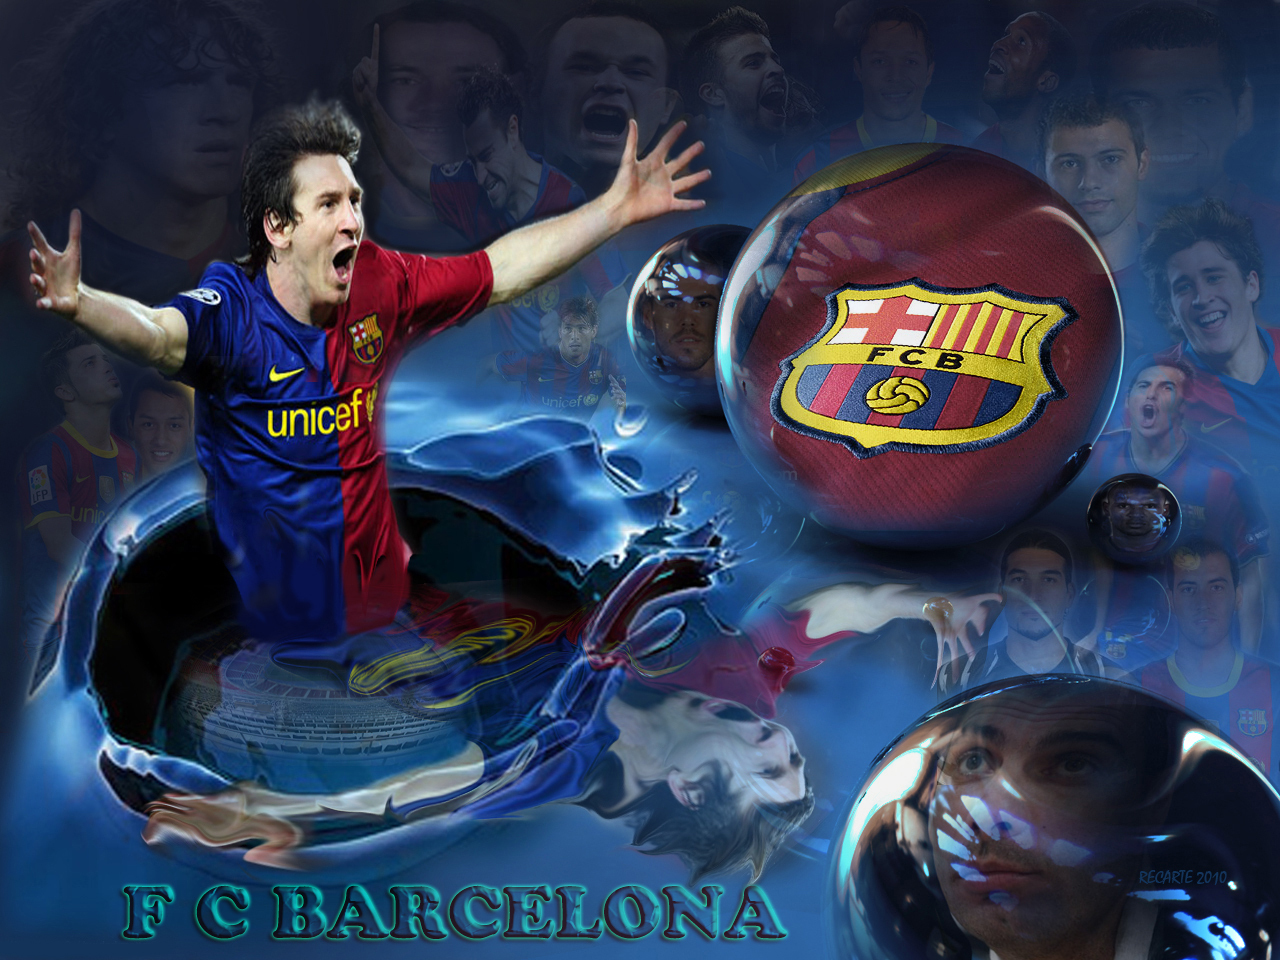 http://1.bp.blogspot.com/-MtA0Ik0iDSU/UUjZGN5cxAI/AAAAAAAACb8/iW3UW9QC3yk/s1600/FC+Barcelona+Players+New+HD+Wallpaper+2013+03.jpg